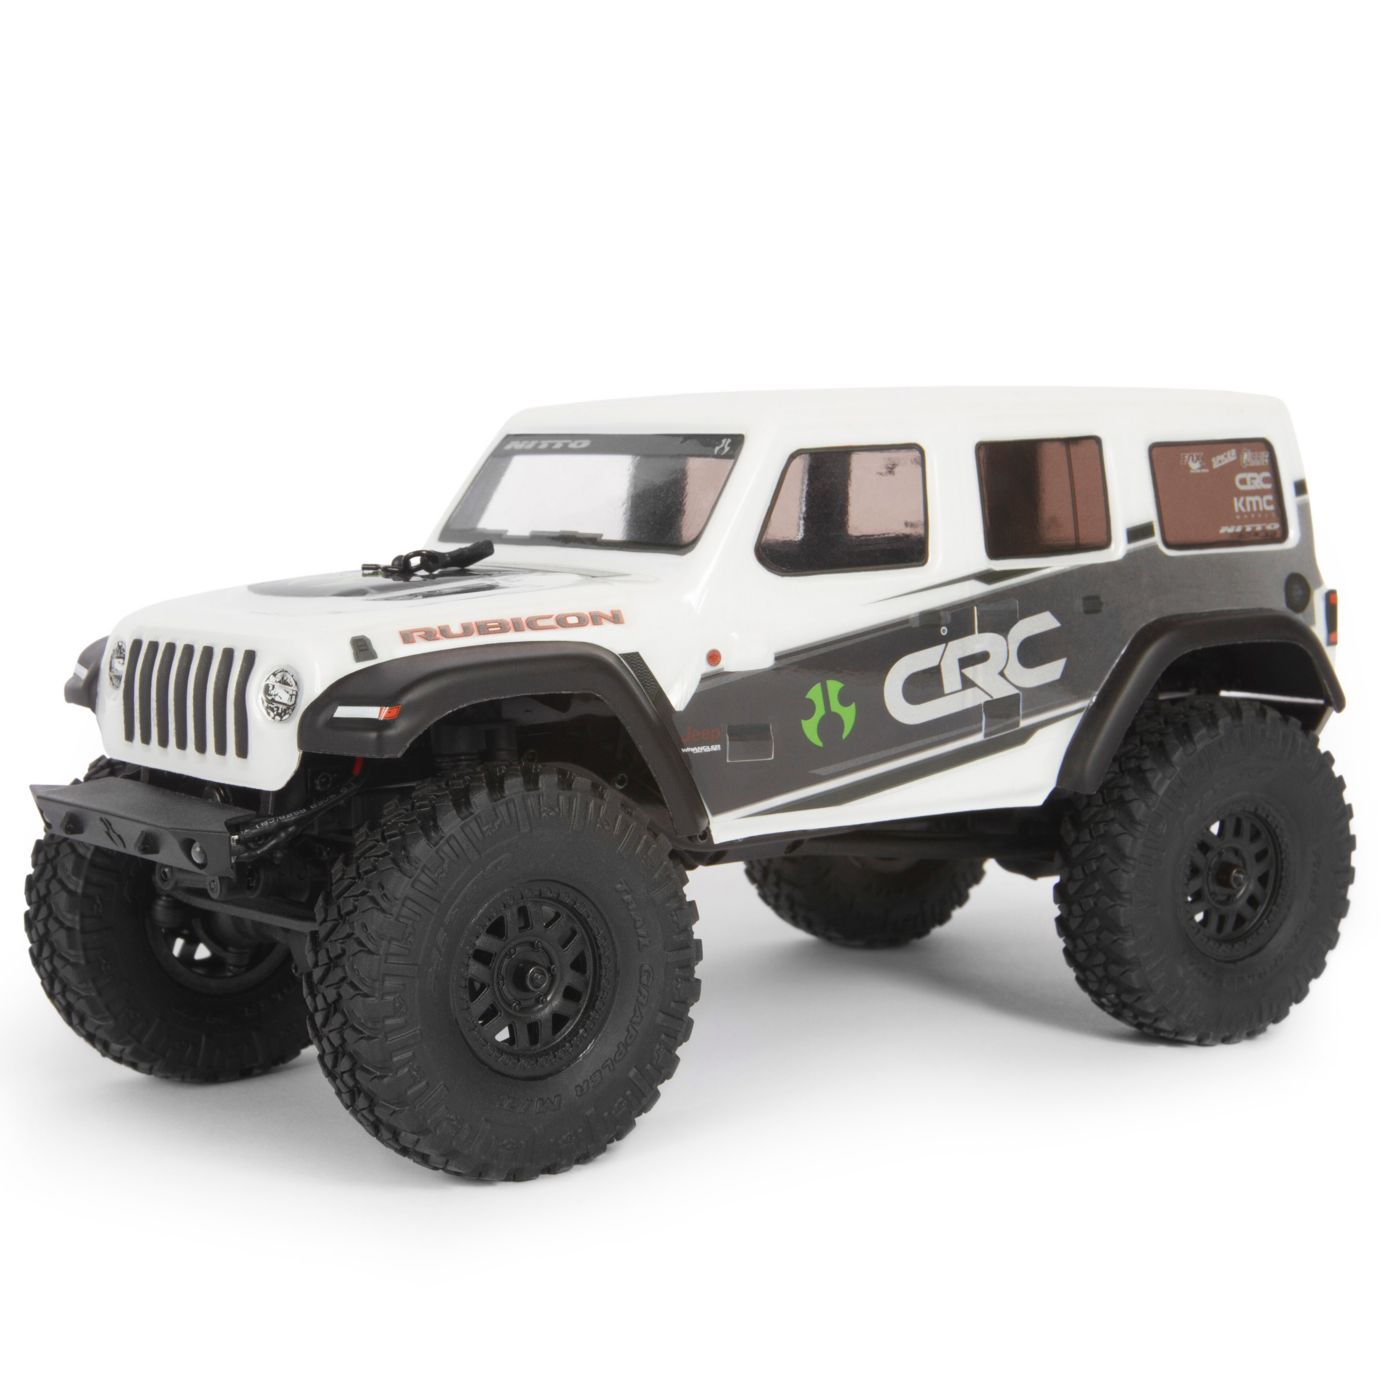 Axial Racing 1/24 SCX24 2019 Jeep Wrangler JLU CRC Rock Crawler 4WD RTR, White